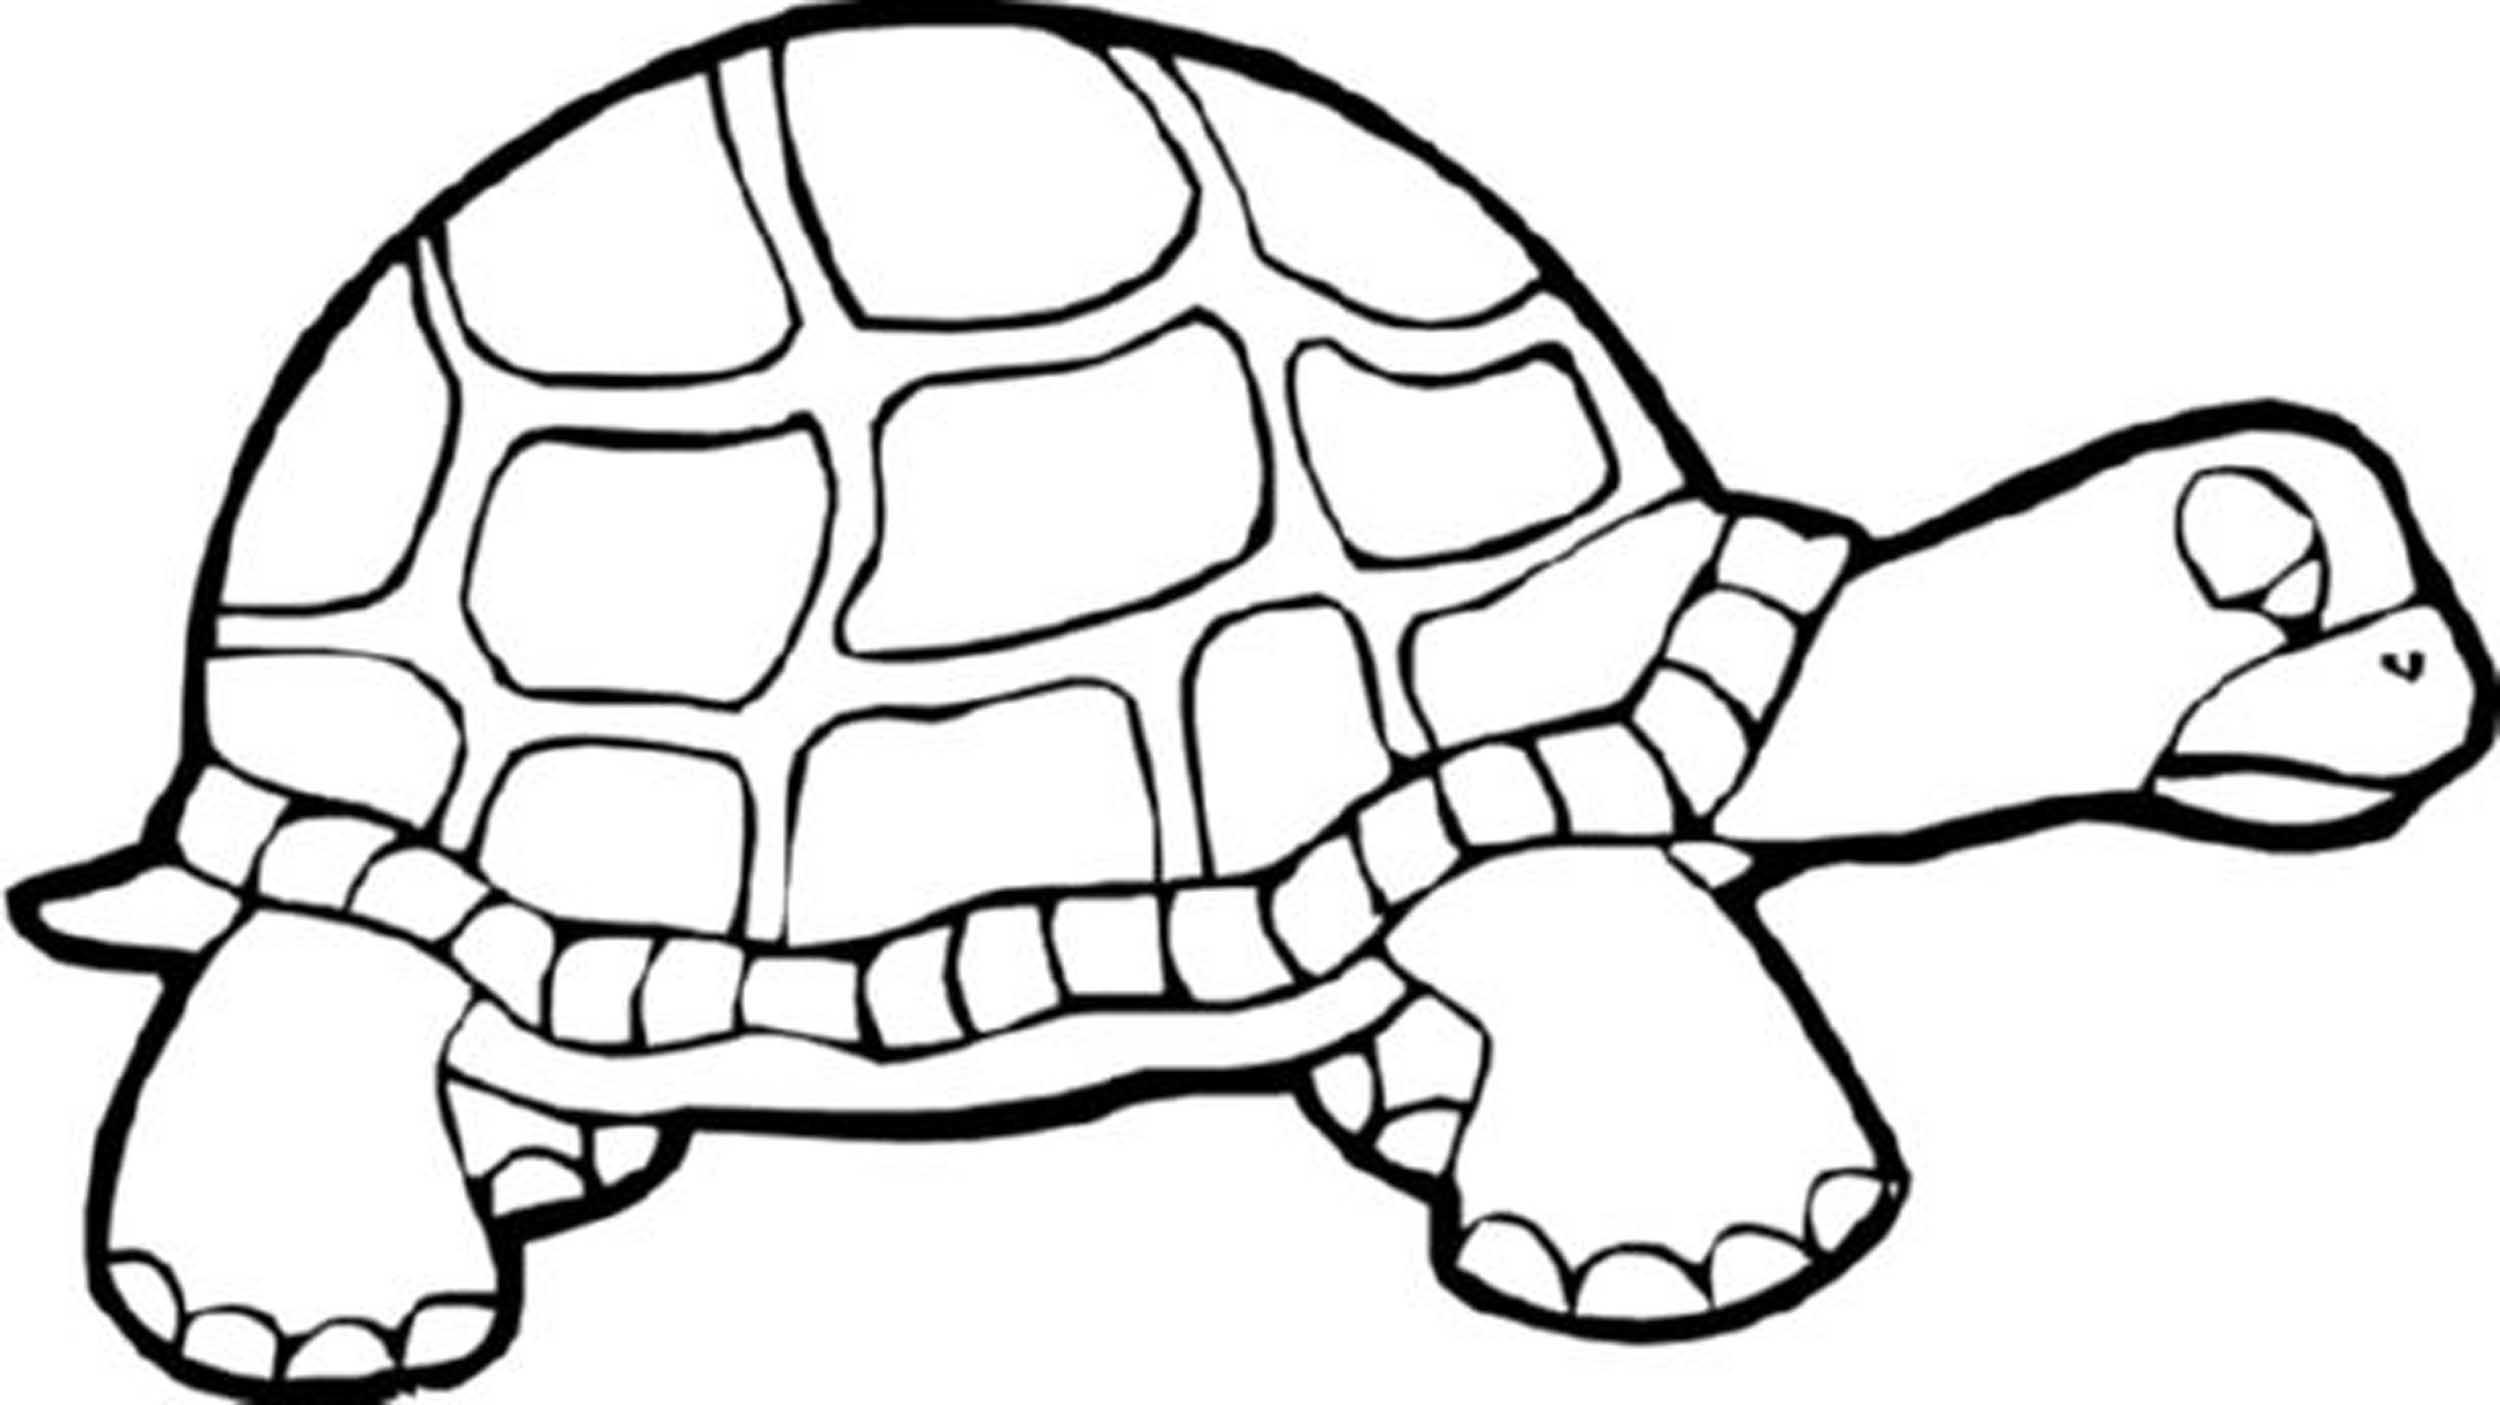 mommy turtle coloring pages - photo#10